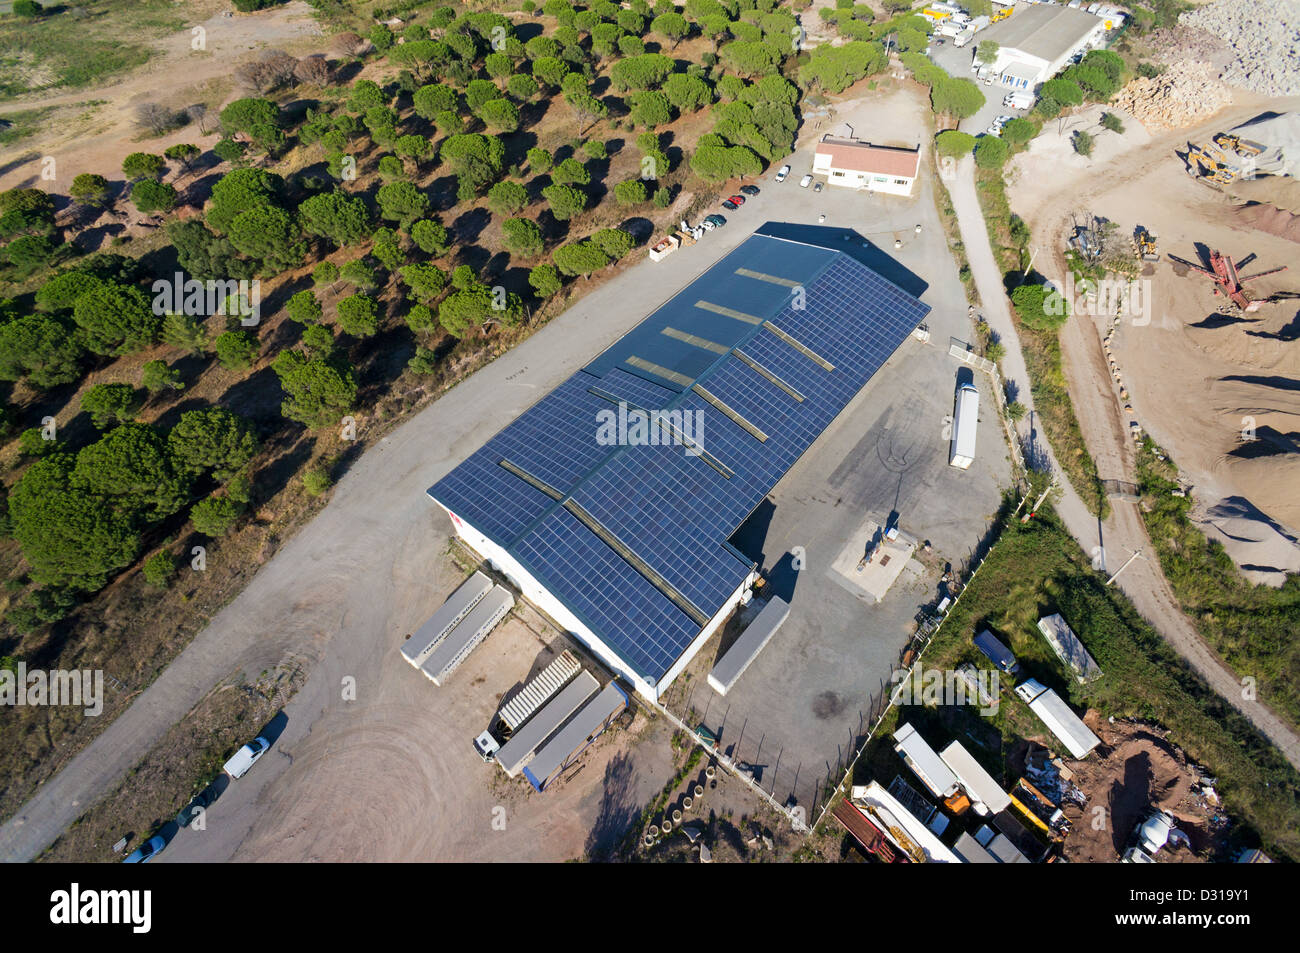 Solar panels on warehouse, aerial view, France, Europe - Stock Image